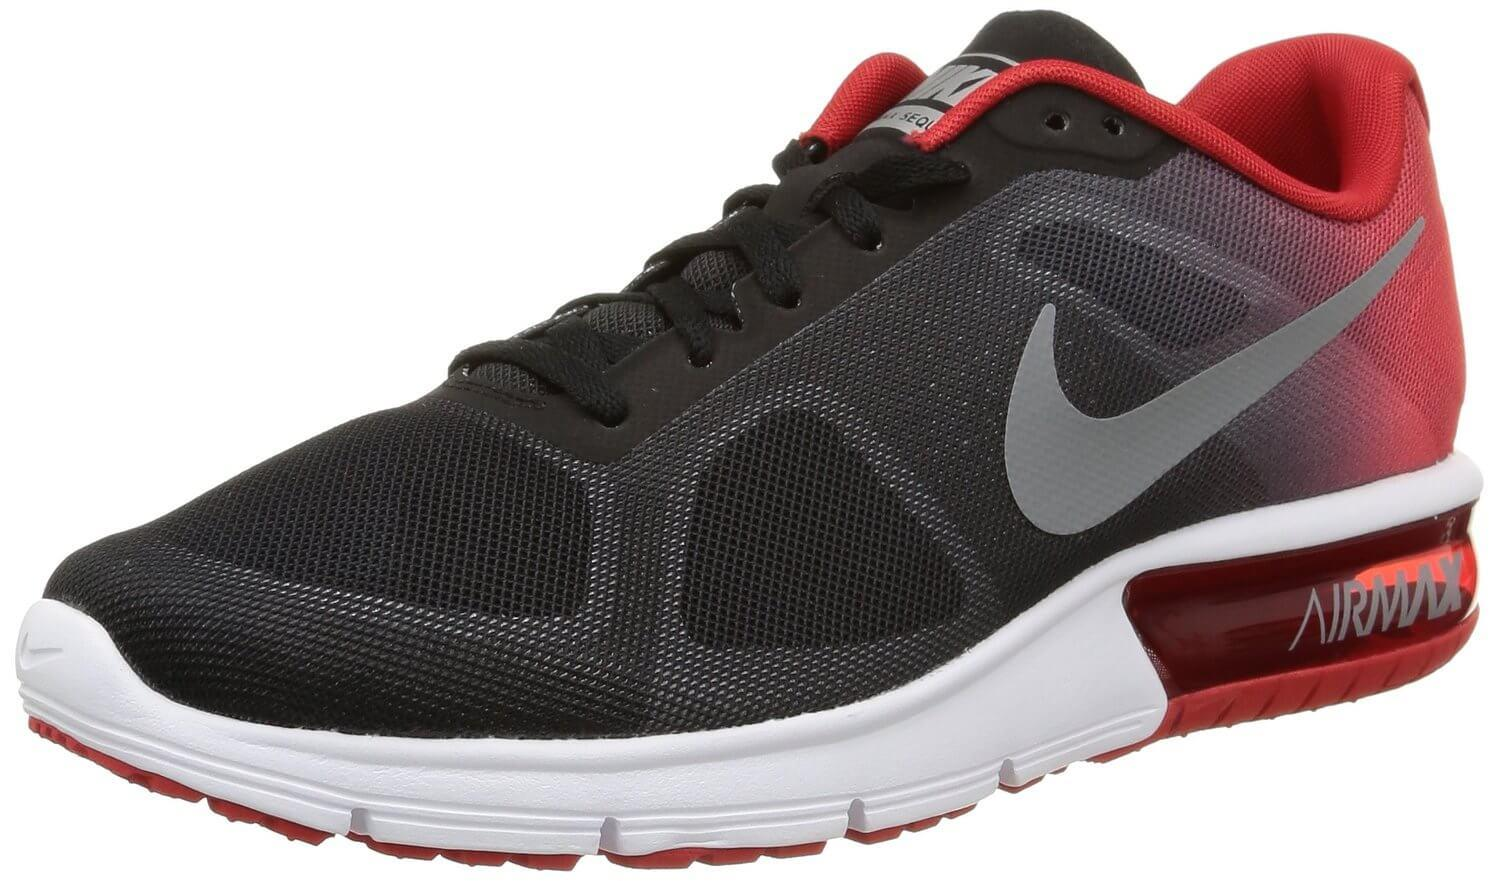 Cheap Nike air max 87 back and red white Cheap Nike air max 87 black and red